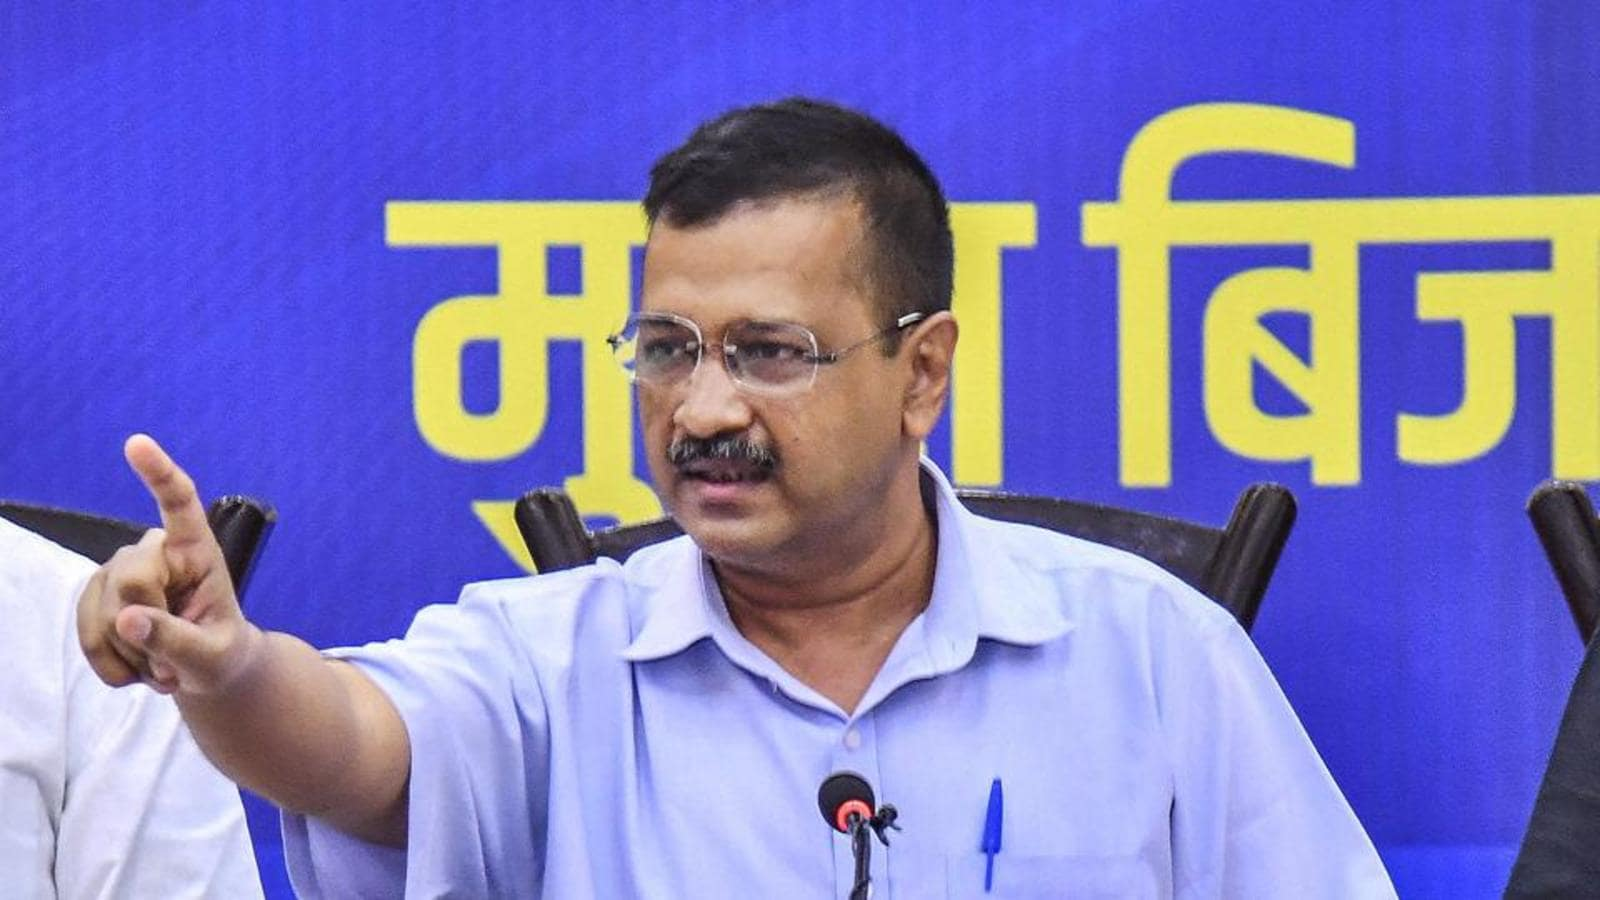 Arvind Kejriwal makes sure free health services if voted to power in 2022